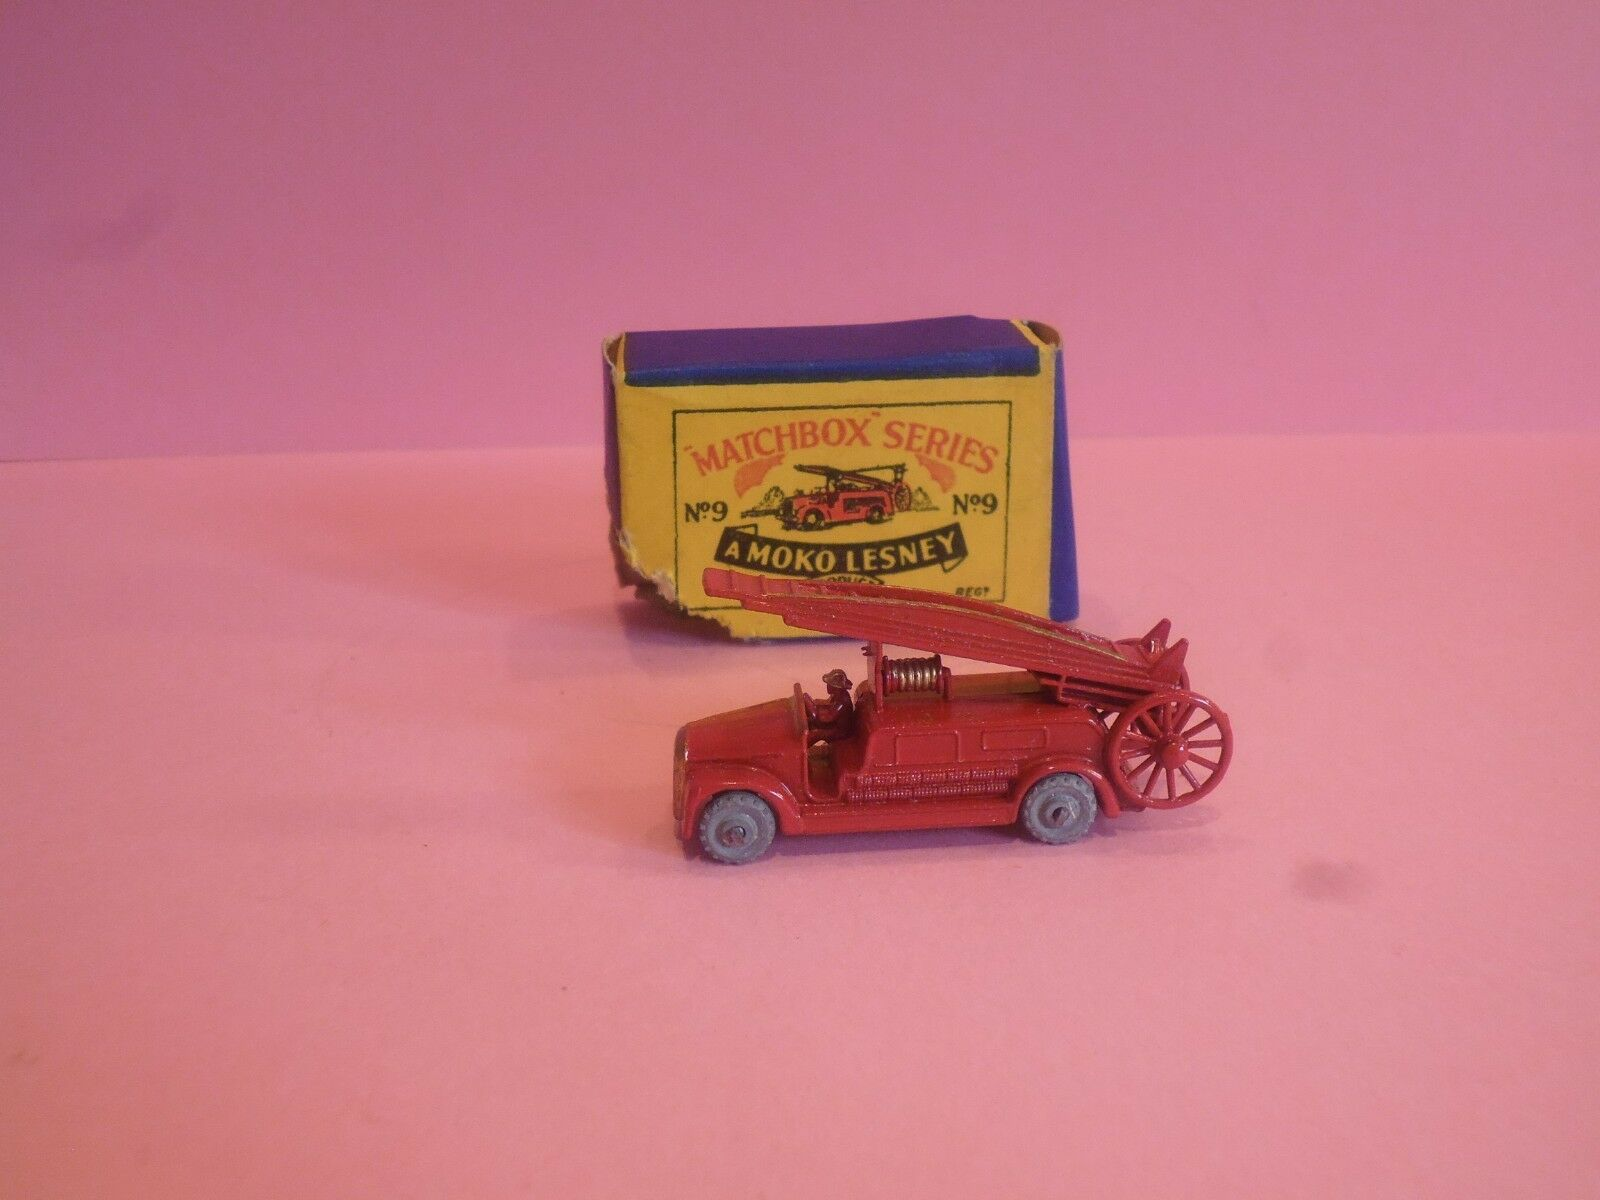 MATCHBOX LESNEY MOKO DENNIS FIRE ENGINE WITH LADDER NO. 9  ORIGINAL AND BOXED